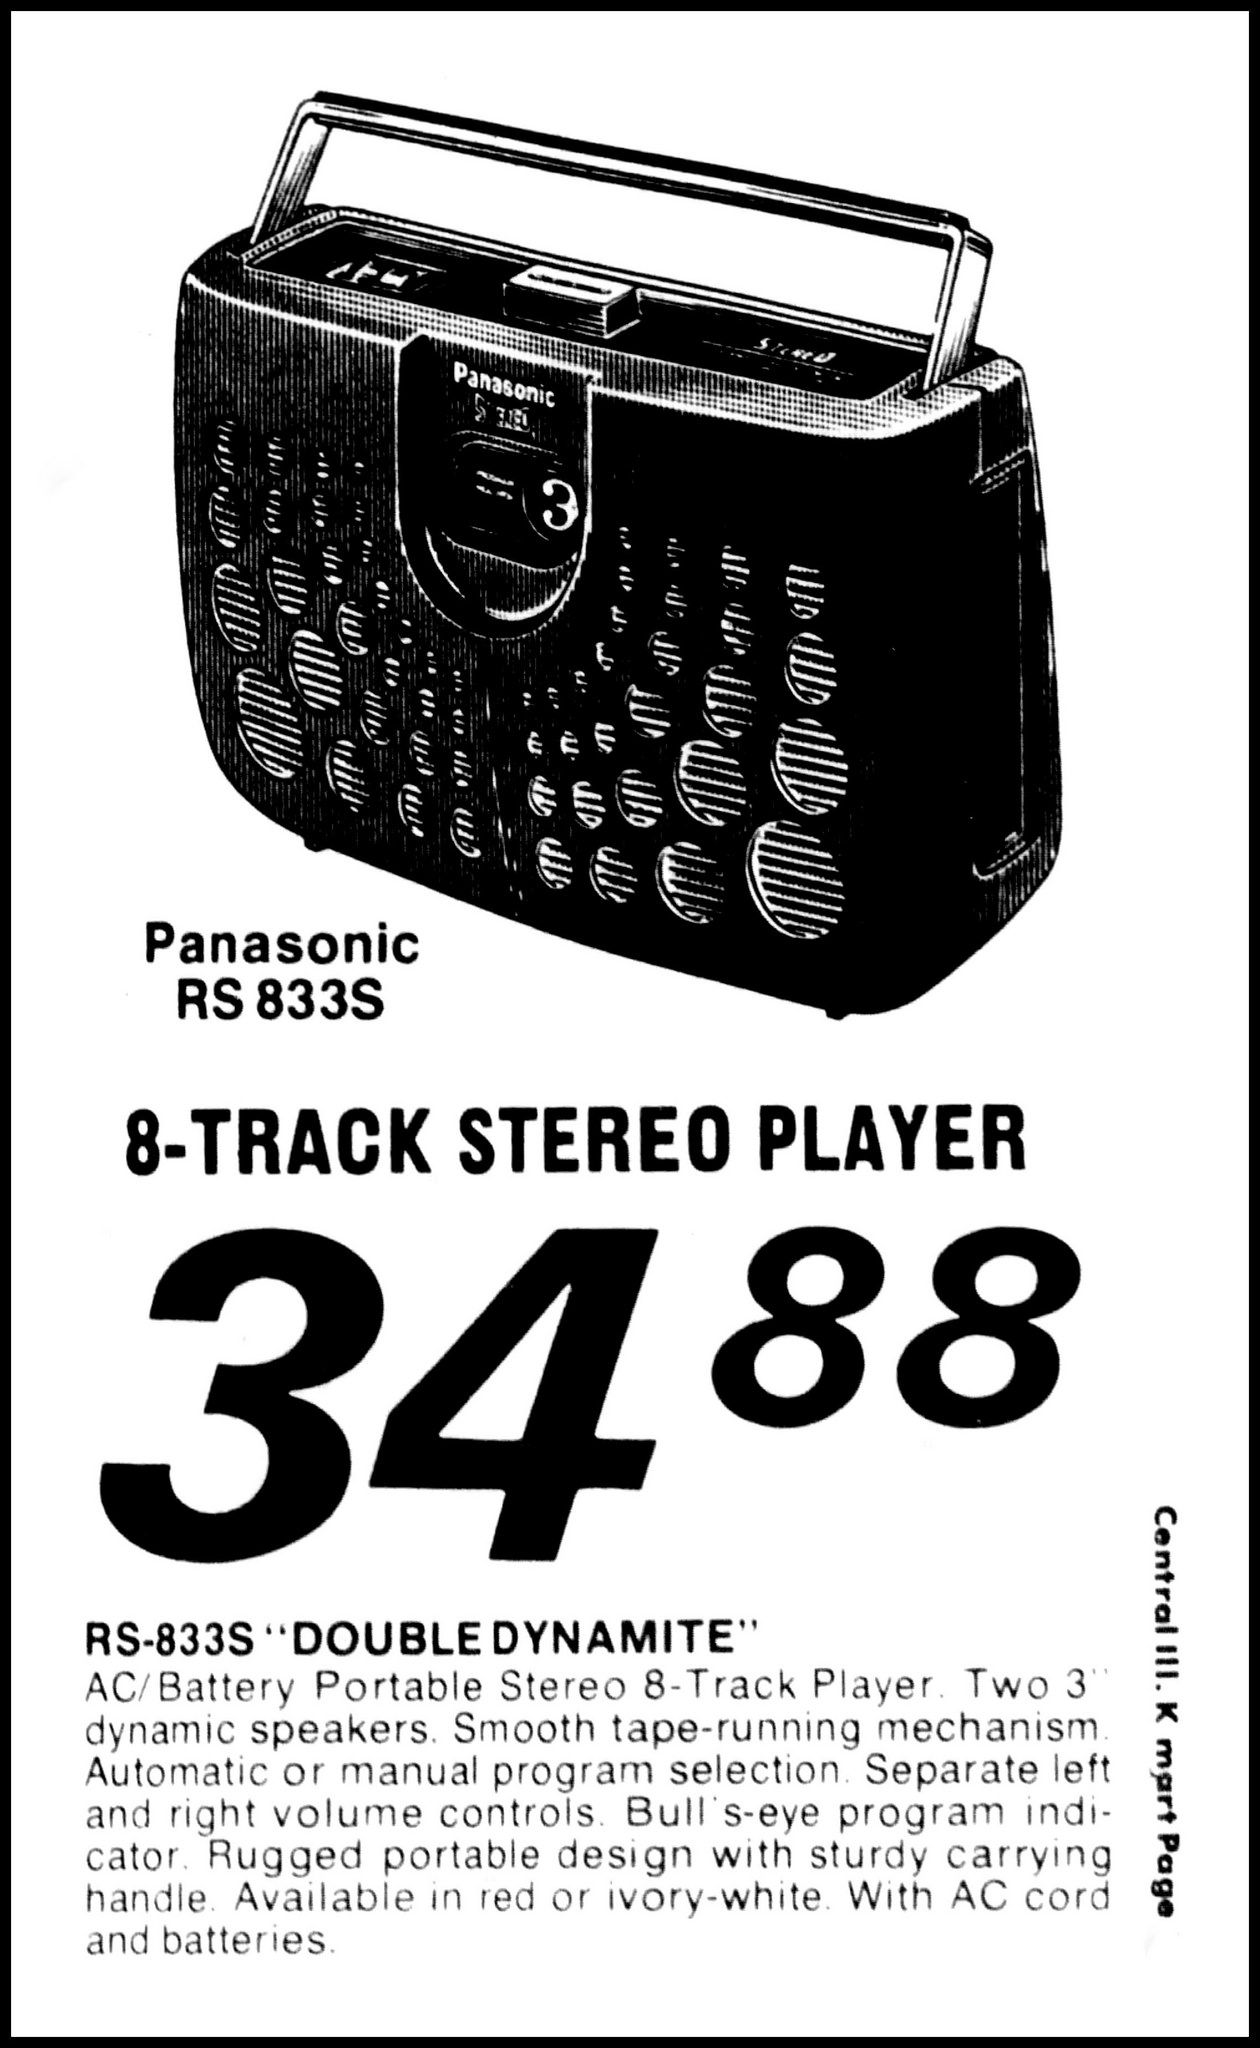 vintage advertising for the panasonic model rs 833s 8 track stereo Rap Audio Cassette Tapes vintage advertising for the panasonic model rs 833s 8 track stereo player in the bloomington illinois pantagraph newspaper april 27 1978 vintage tape